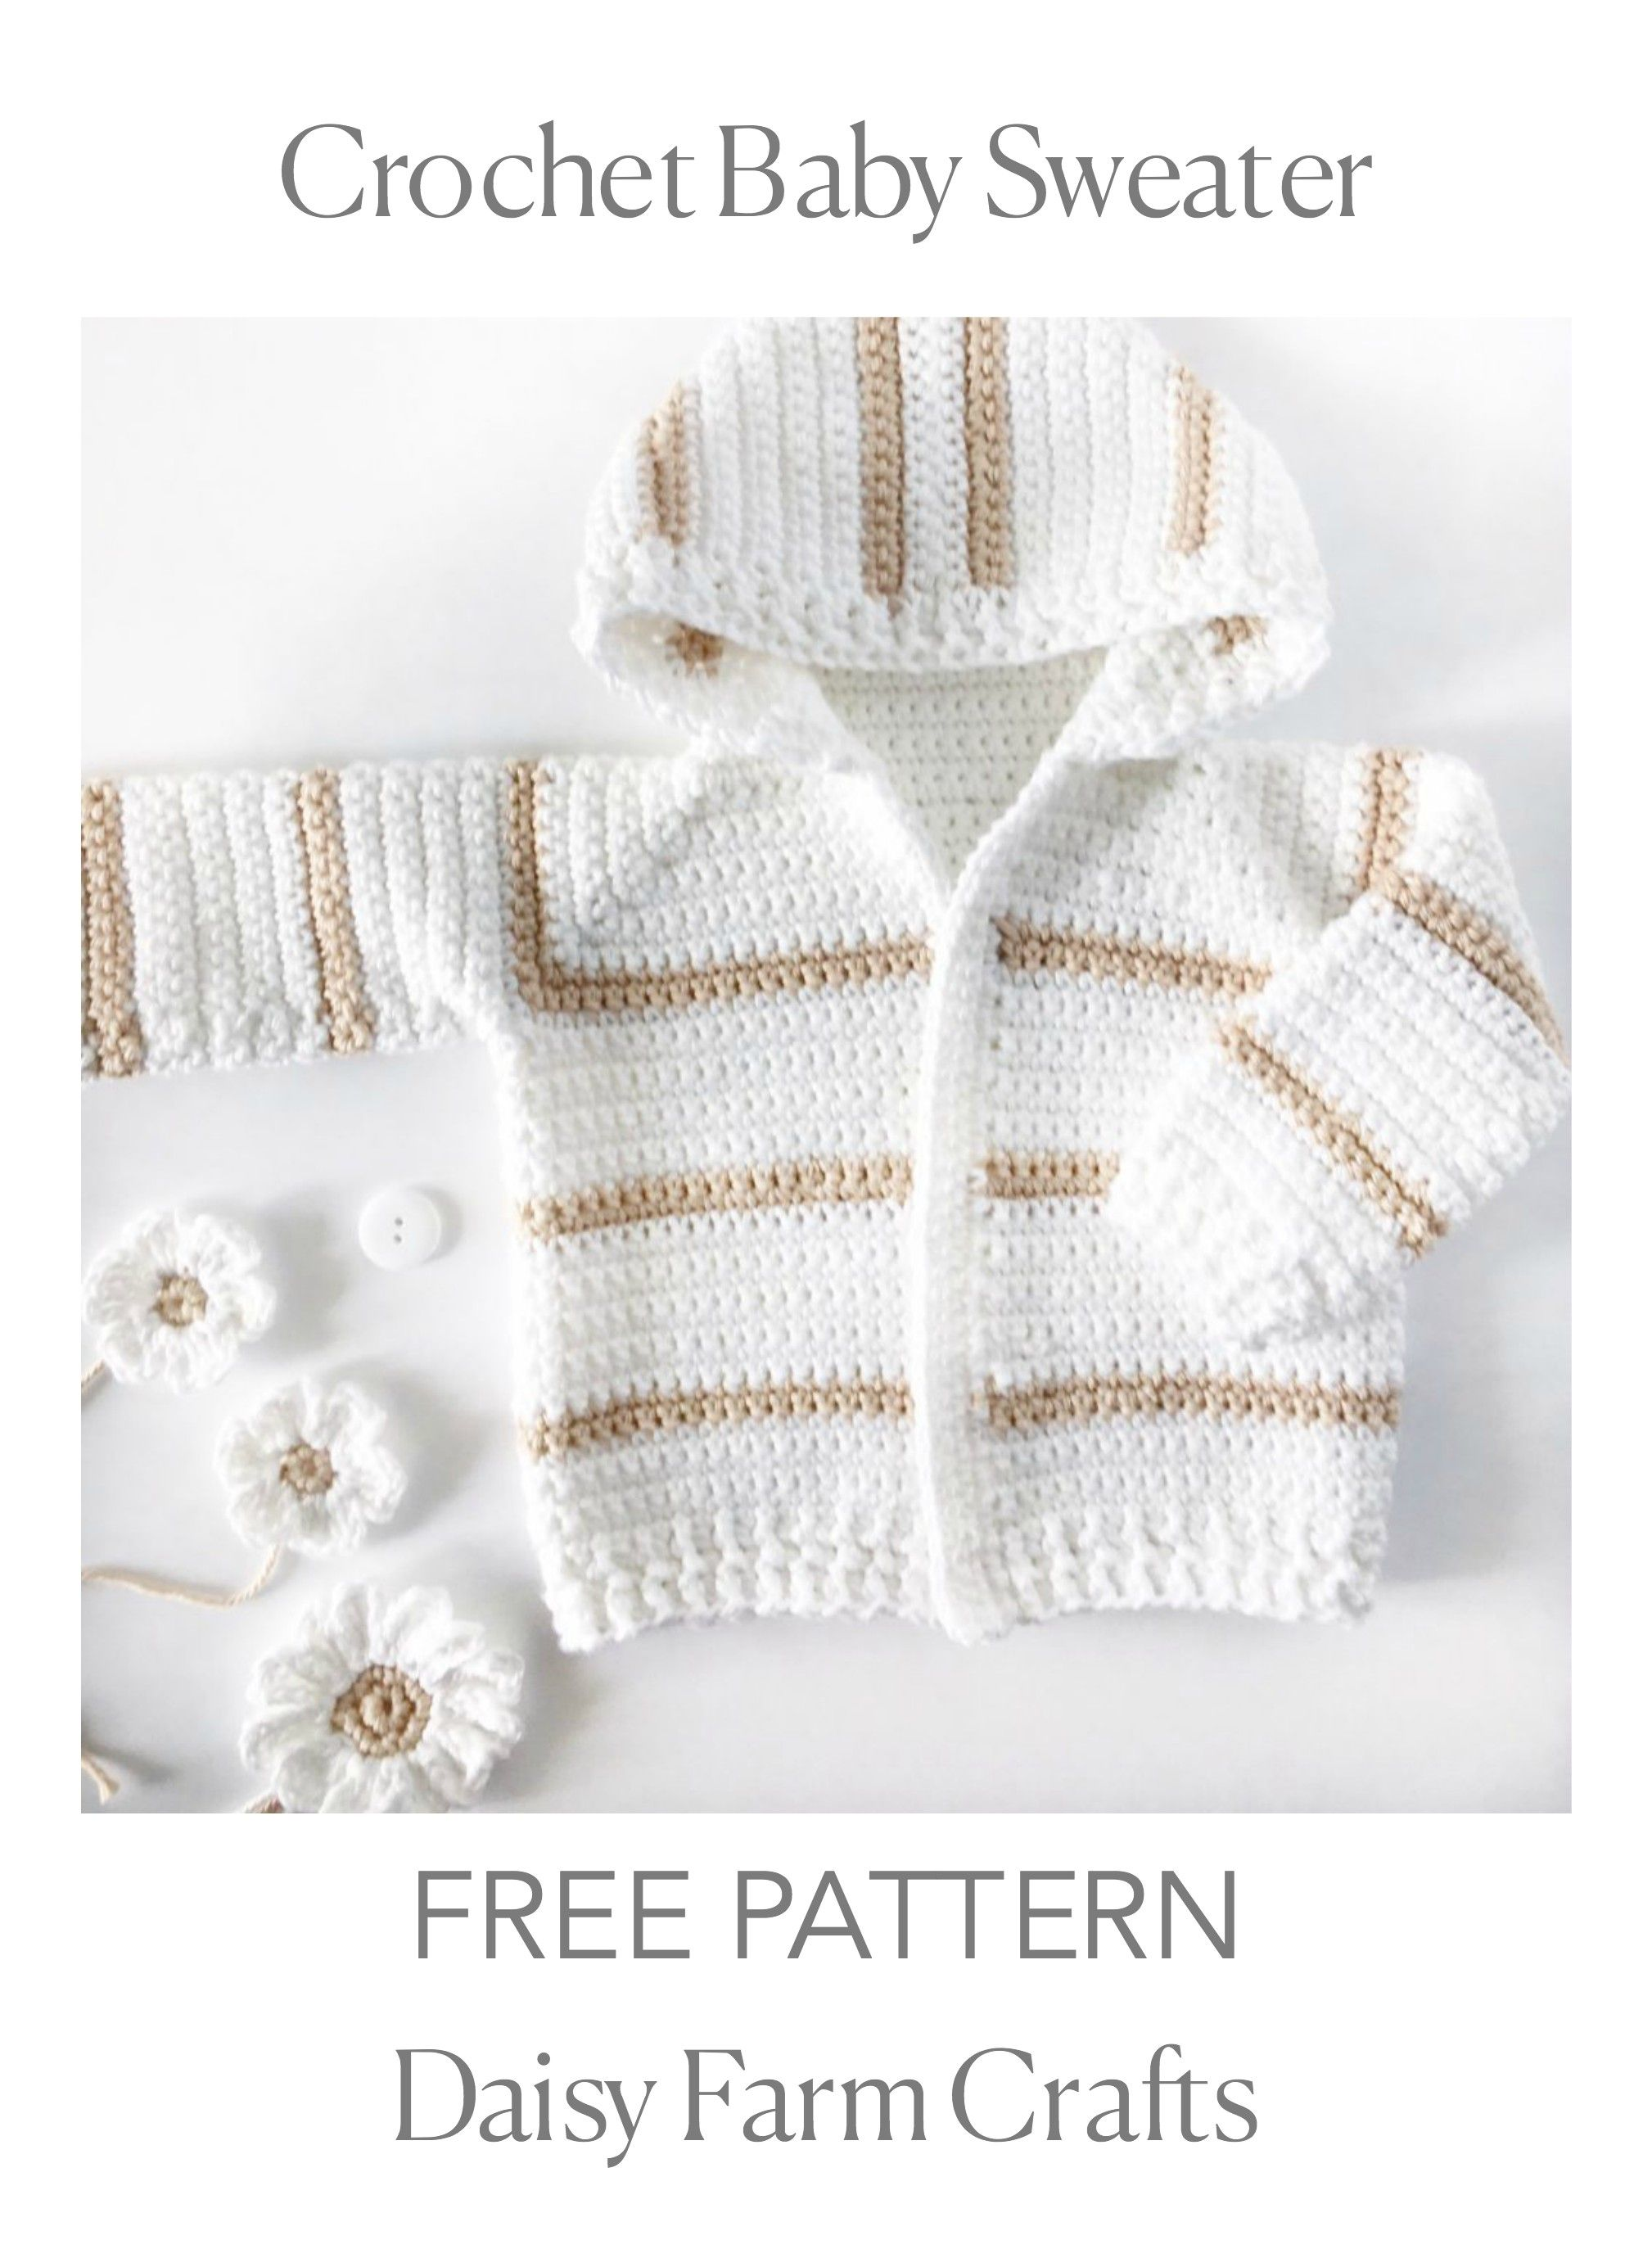 FREE PATTERN - Crochet Baby Sweater | Baby crochet | Pinterest ...